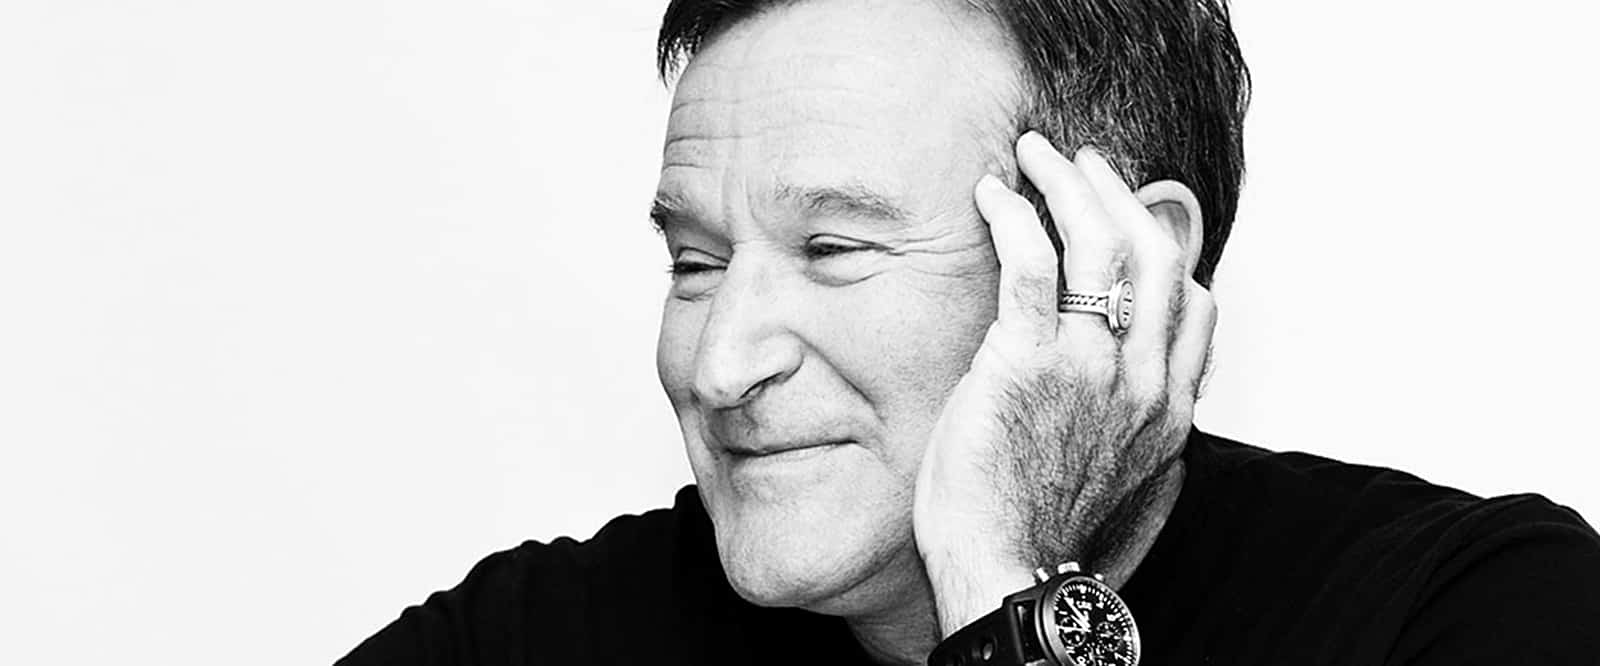 Robin Williams Quotes About Life Extraordinary 7 Memorable Robin Williams Quotes On Life Love And Happiness That